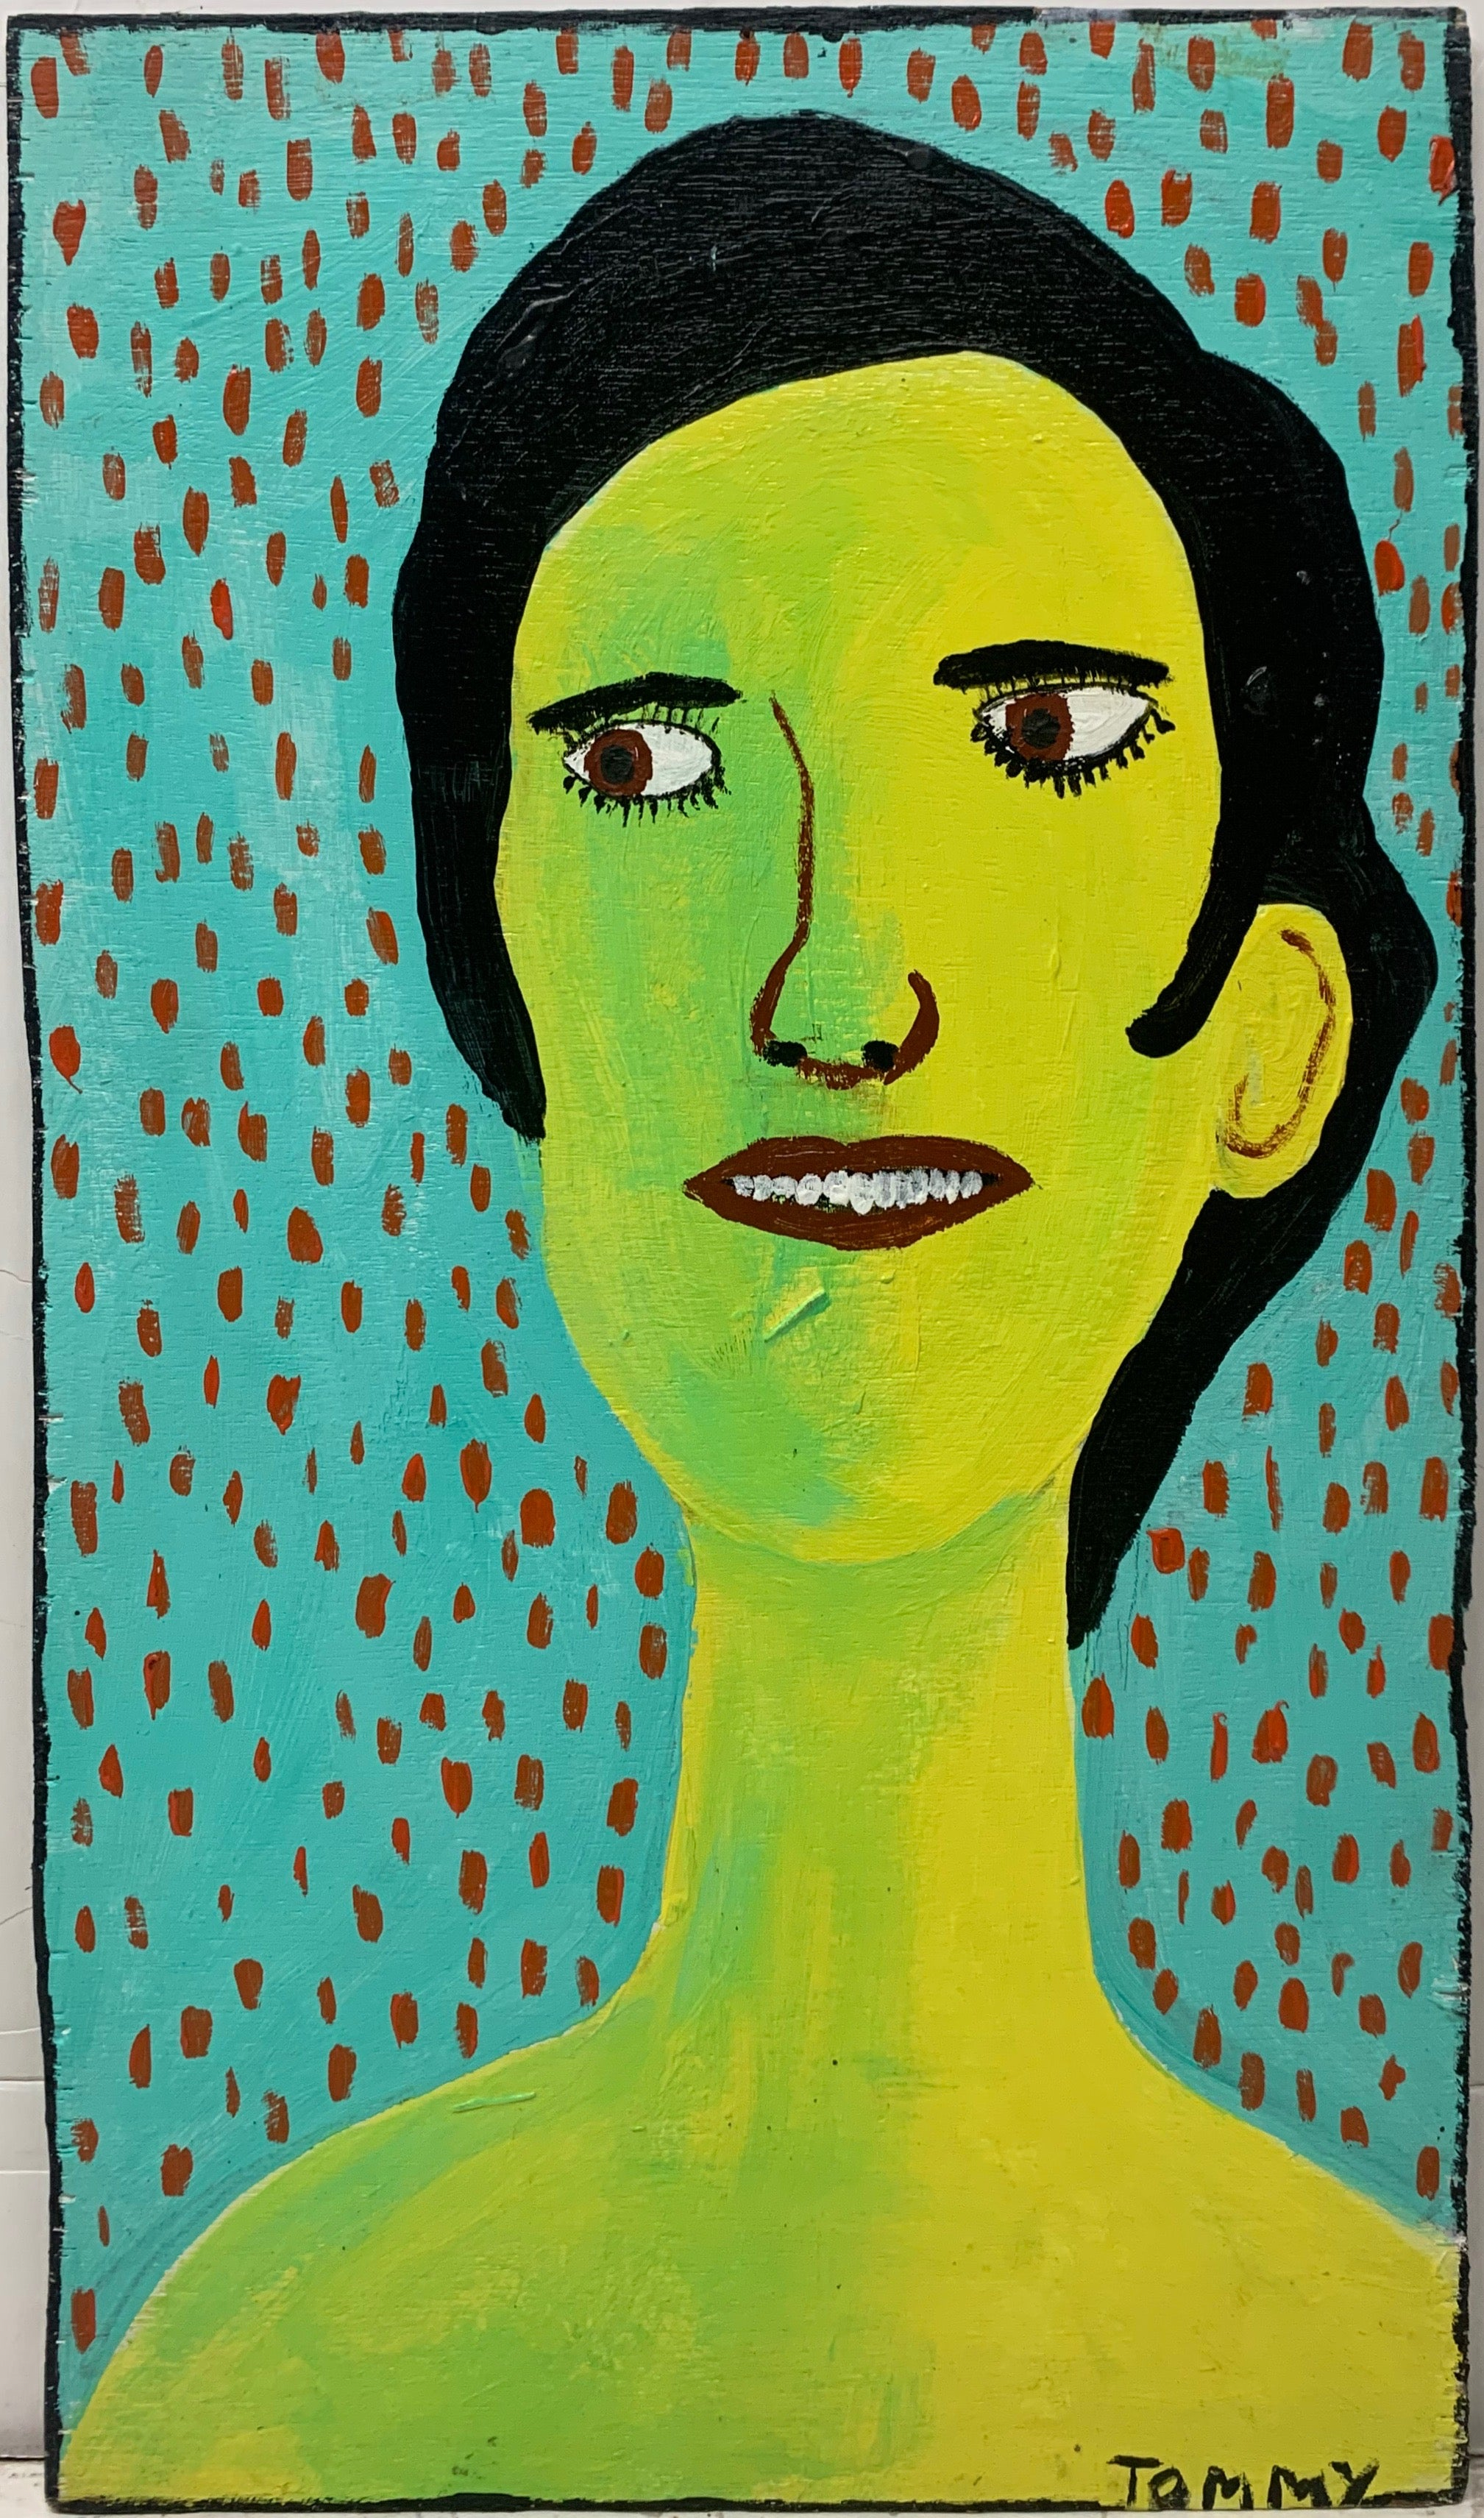 A Tommy Cheng portrait of a woman with lime green skin biting her lip.